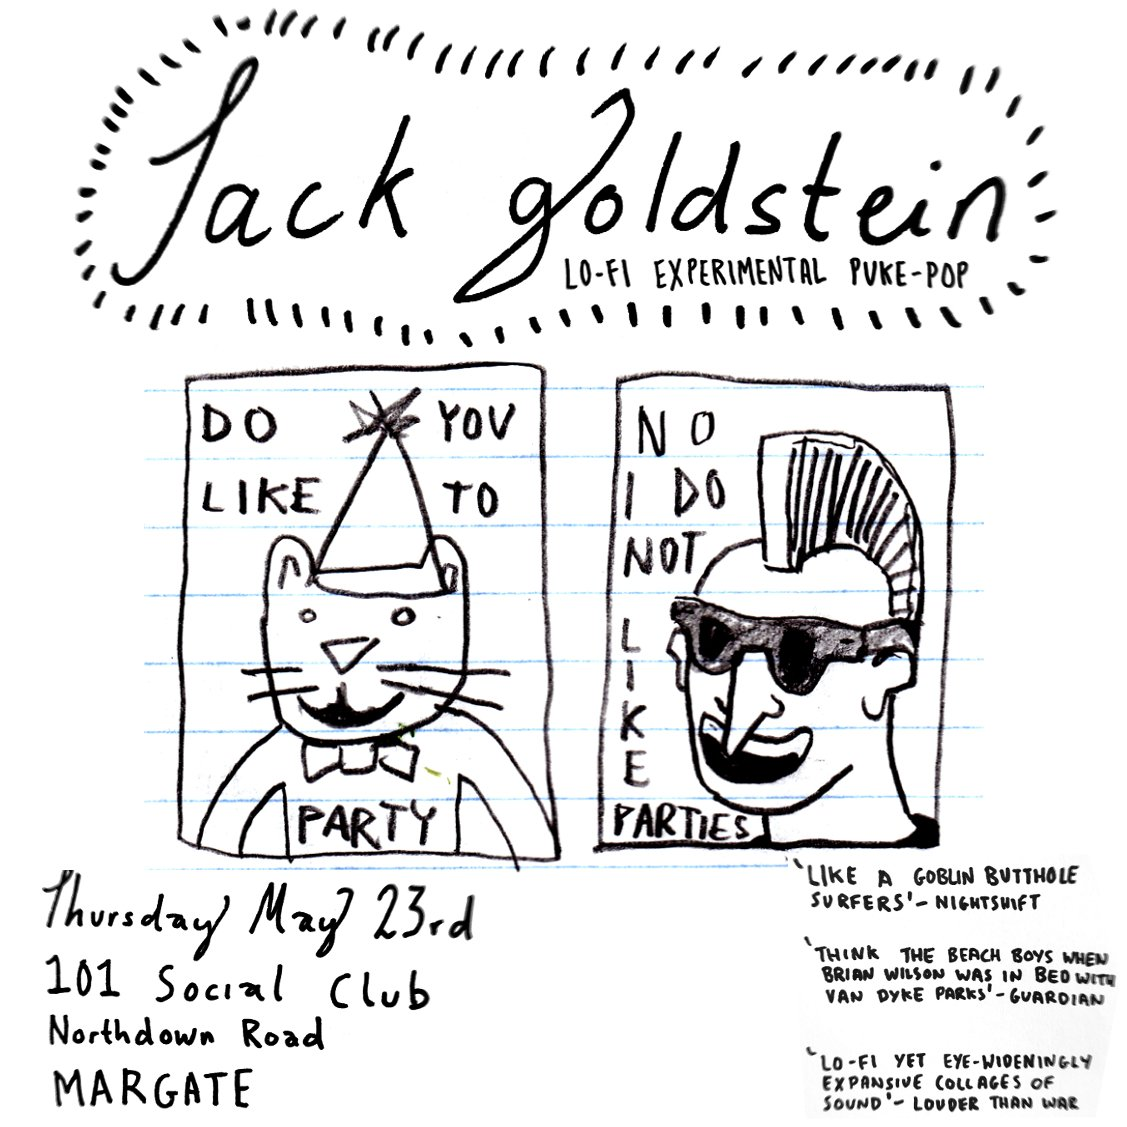 MARGATE! I'm playing at @101SocialClub on MAY 23rd! Bring along your phallic sticks of rock and lets smash  them in the same way we smash the patriachy... against some linoleum  flooring that is sticky with Jägermeister! 🥰 #margate #101socialclub #seaside